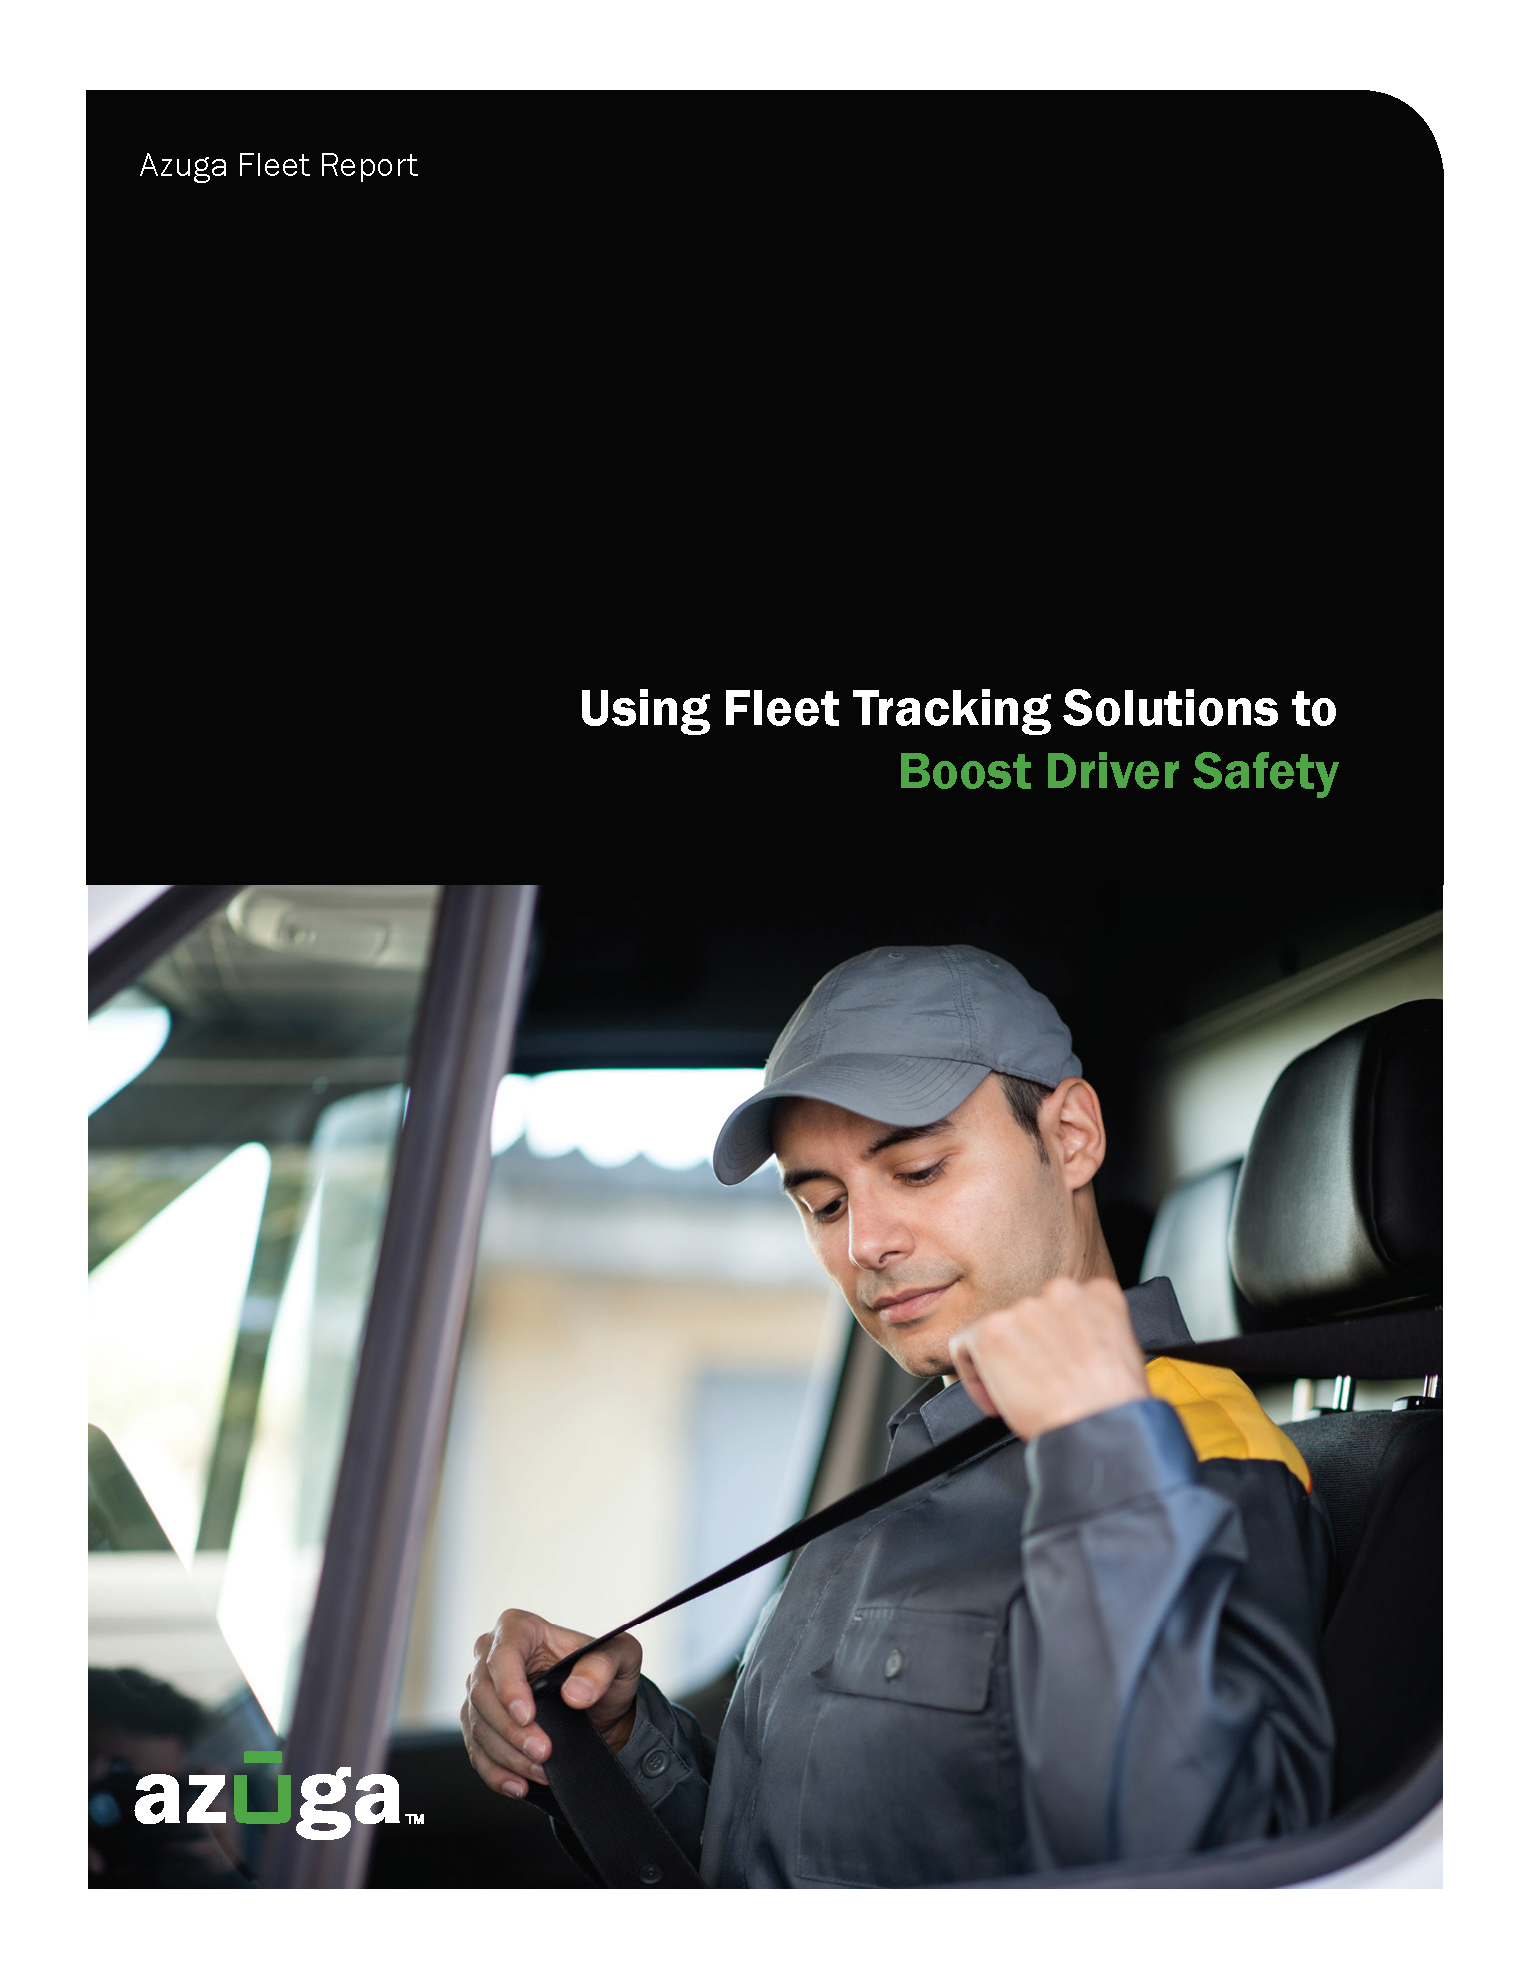 Using Fleet Tracking Solutions to Boost Driver Safety - The Importance of Maintaining Safe Driving for Your Business